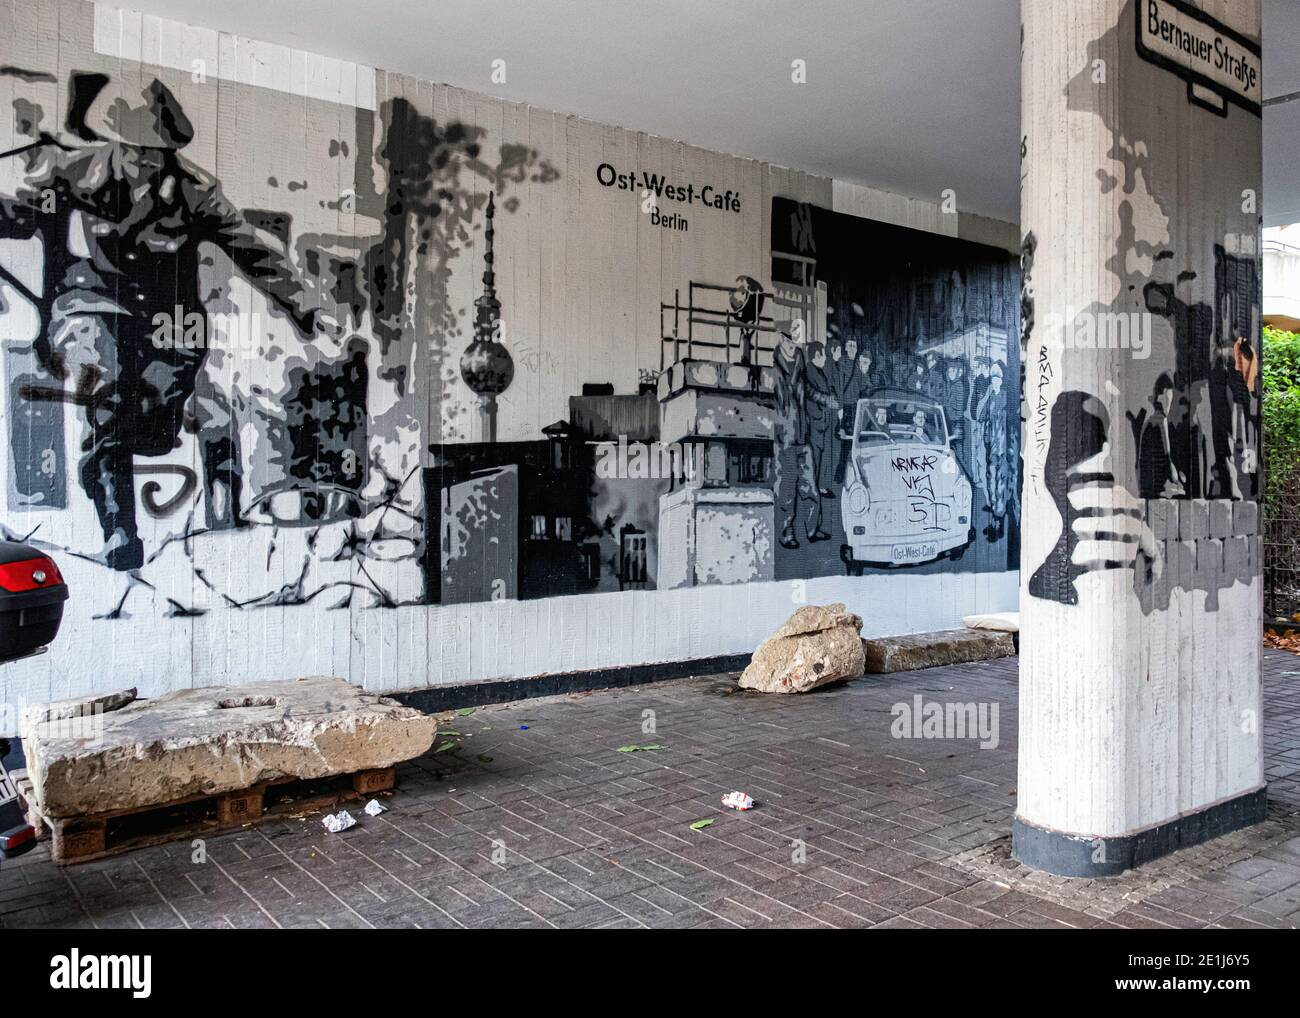 Parking garage of Ost-West-Cafe with black and white pictures of Berlin Wall history In Bernauer Strasse,Mitte,Berlin Stock Photo